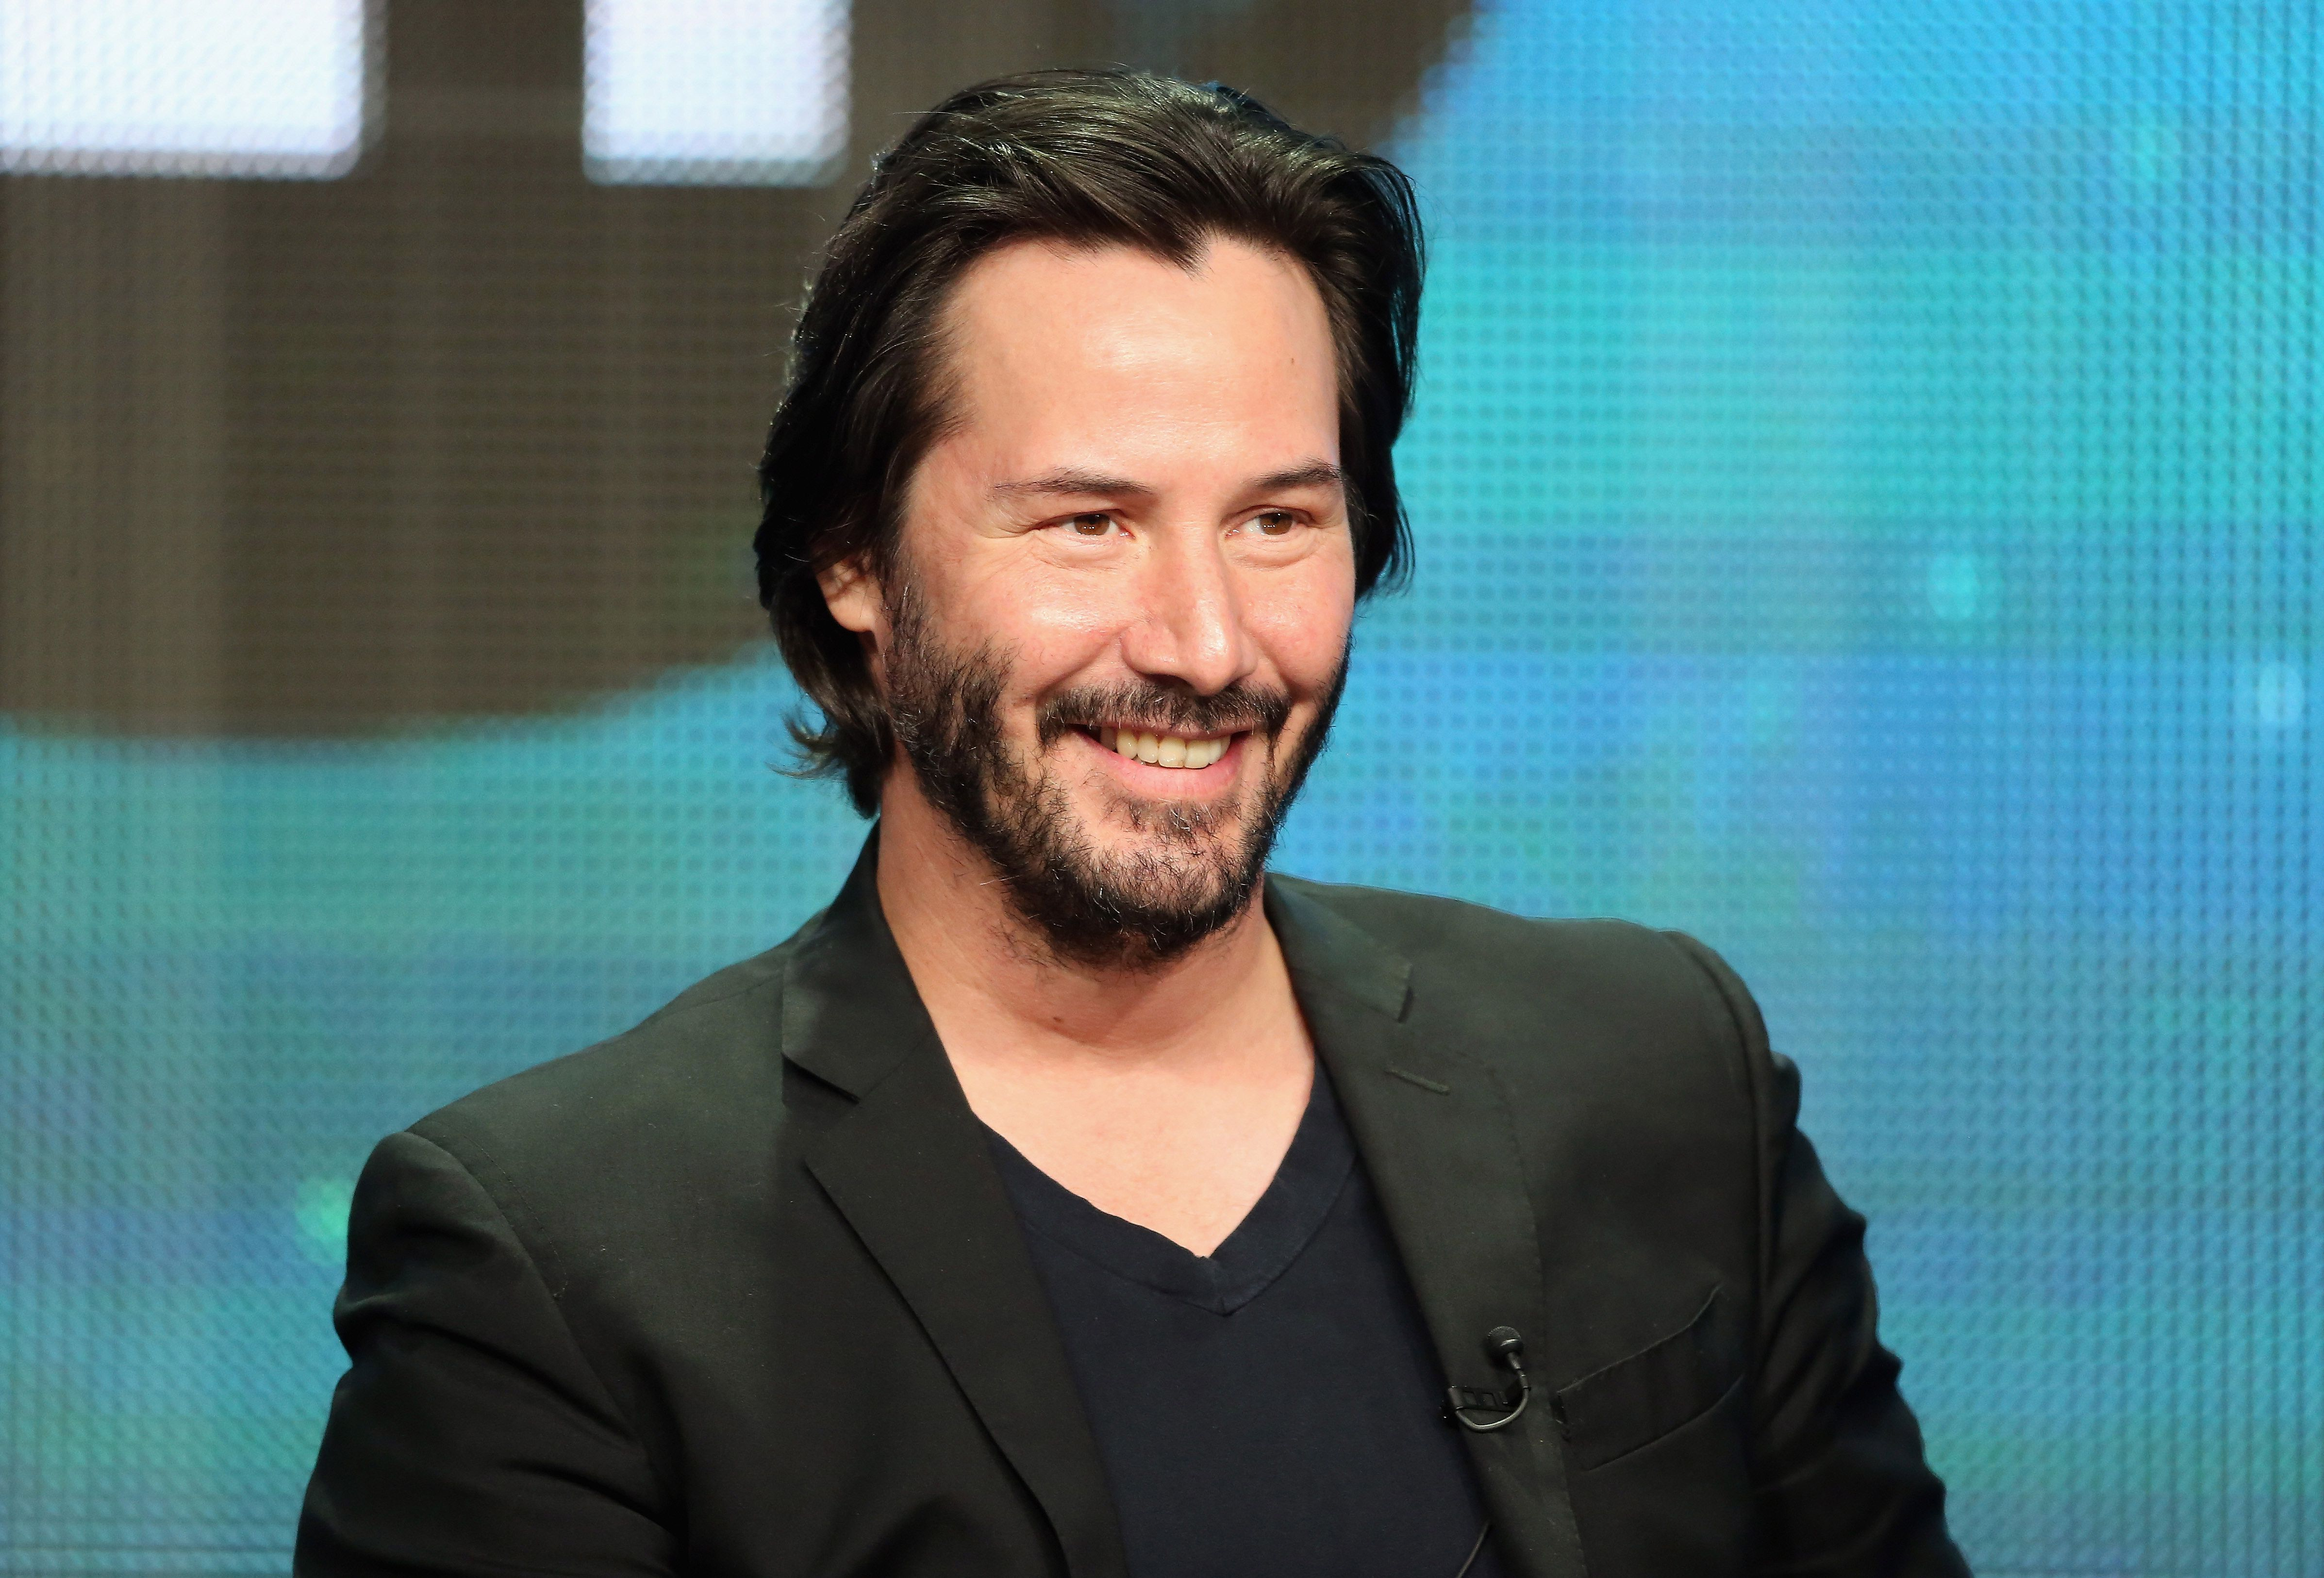 Keanu Reeves Wallpapers Images Photos Pictures Backgrounds